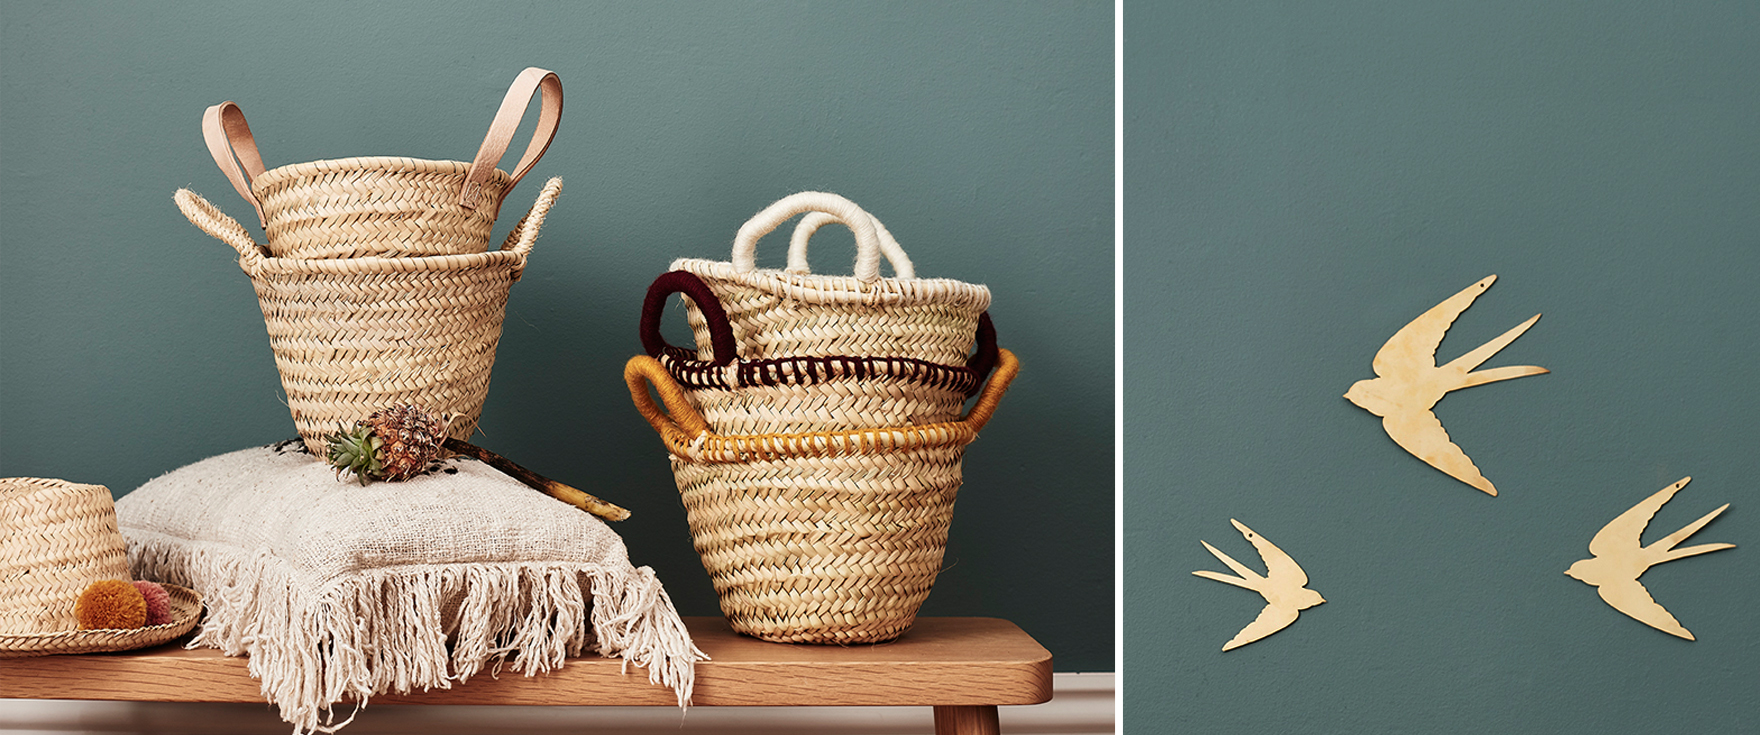 Tumbleweed Baskets & Swallows